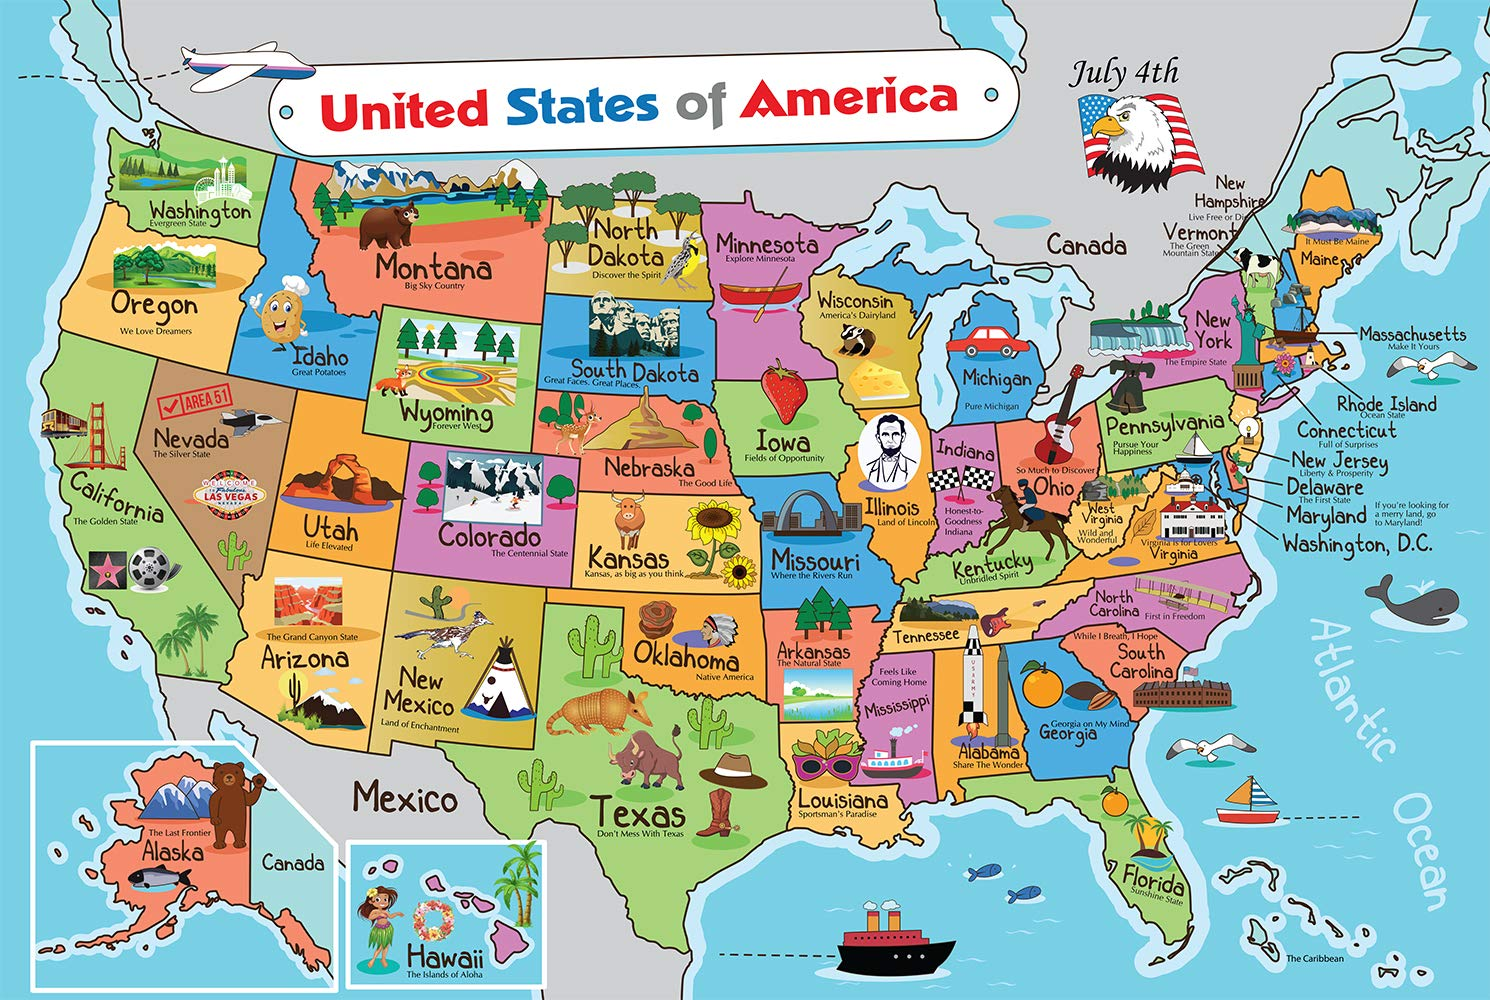 Kids United States Map | Wall Poster 13"|1490|1000|?|b9f54ecd97de196cf61fefa570357b68|False|UNLIKELY|0.3310834765434265